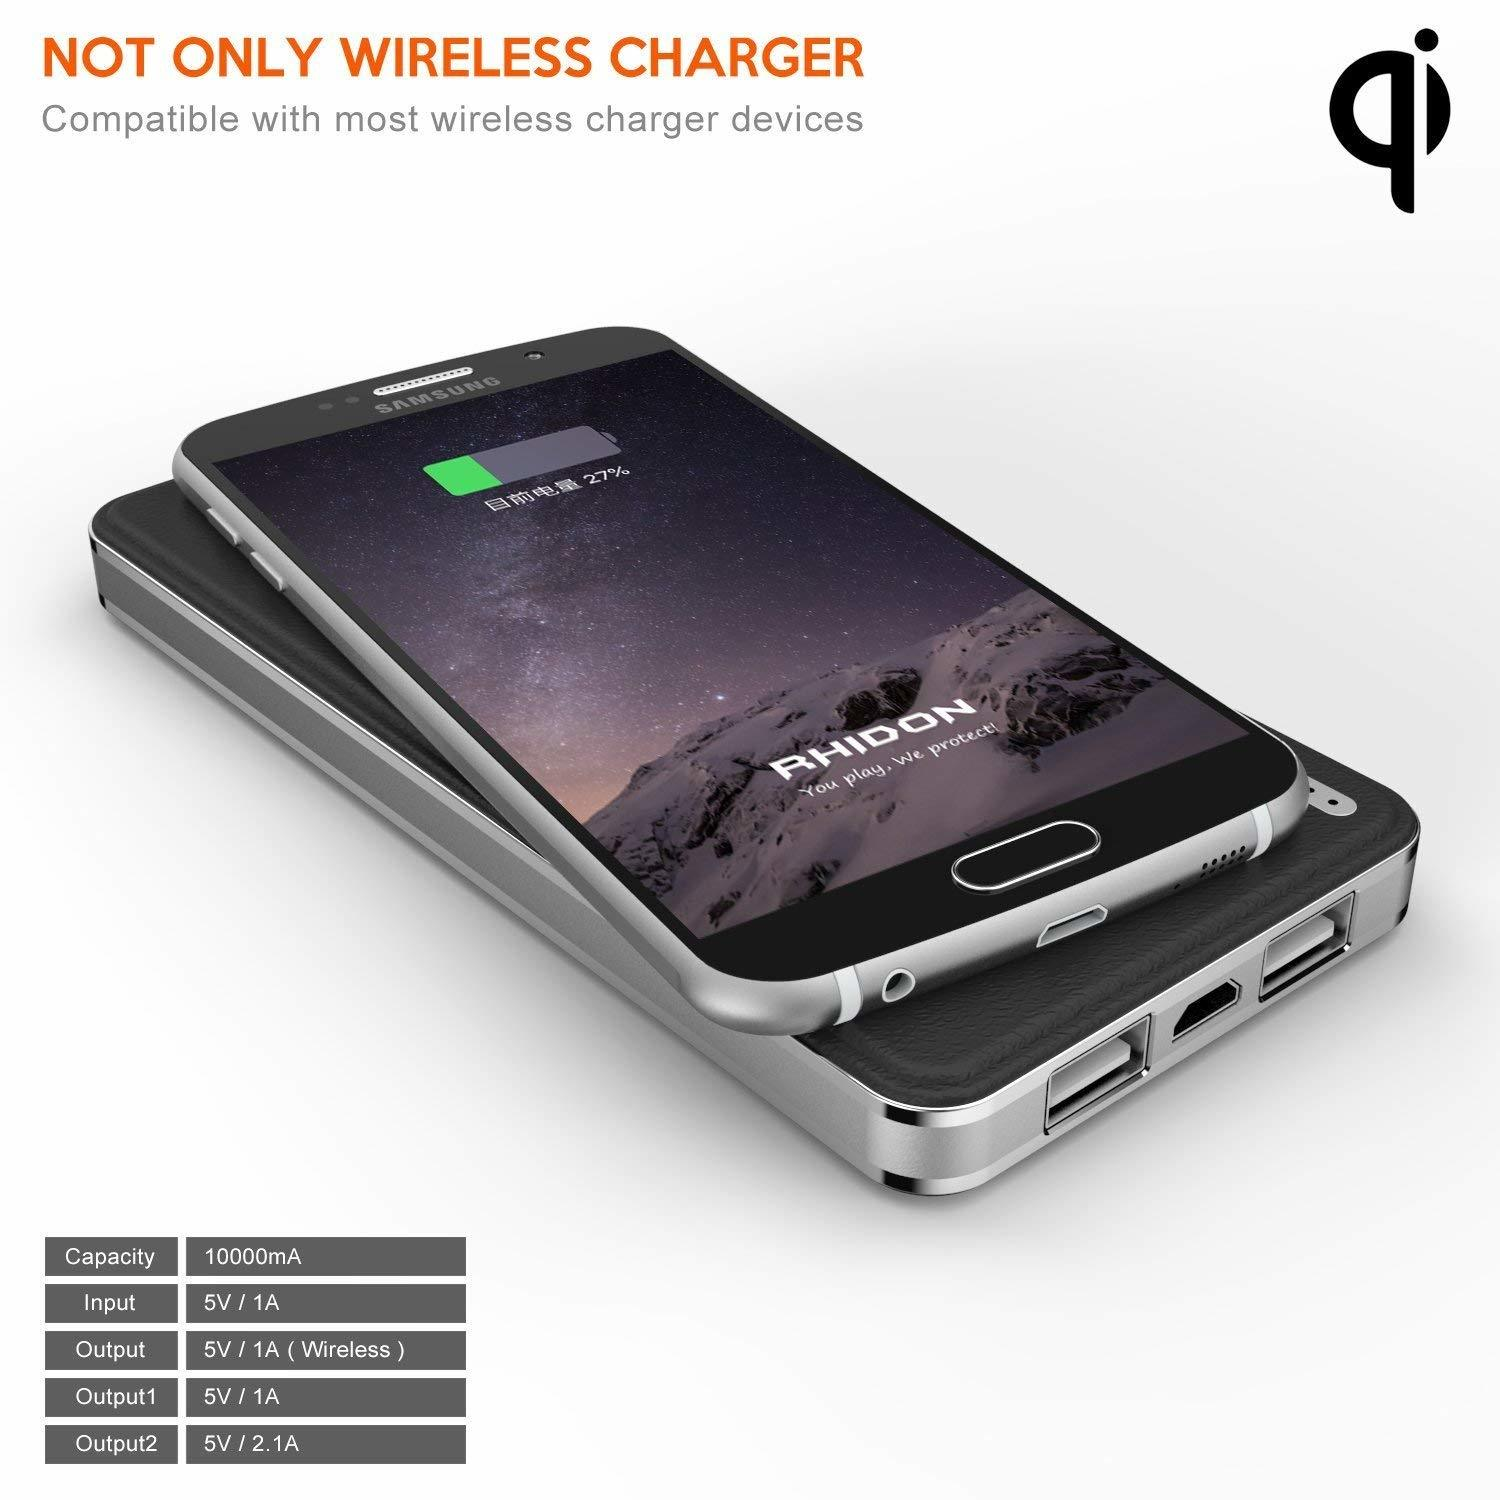 Qi Wireless Charger Power Bank 10000 Mah Buy Sell Online Best 10000mah Place Your Cell Phone On The Padthen Turn Buttonthe Wirelss Base Will Automatic Display Blue Light